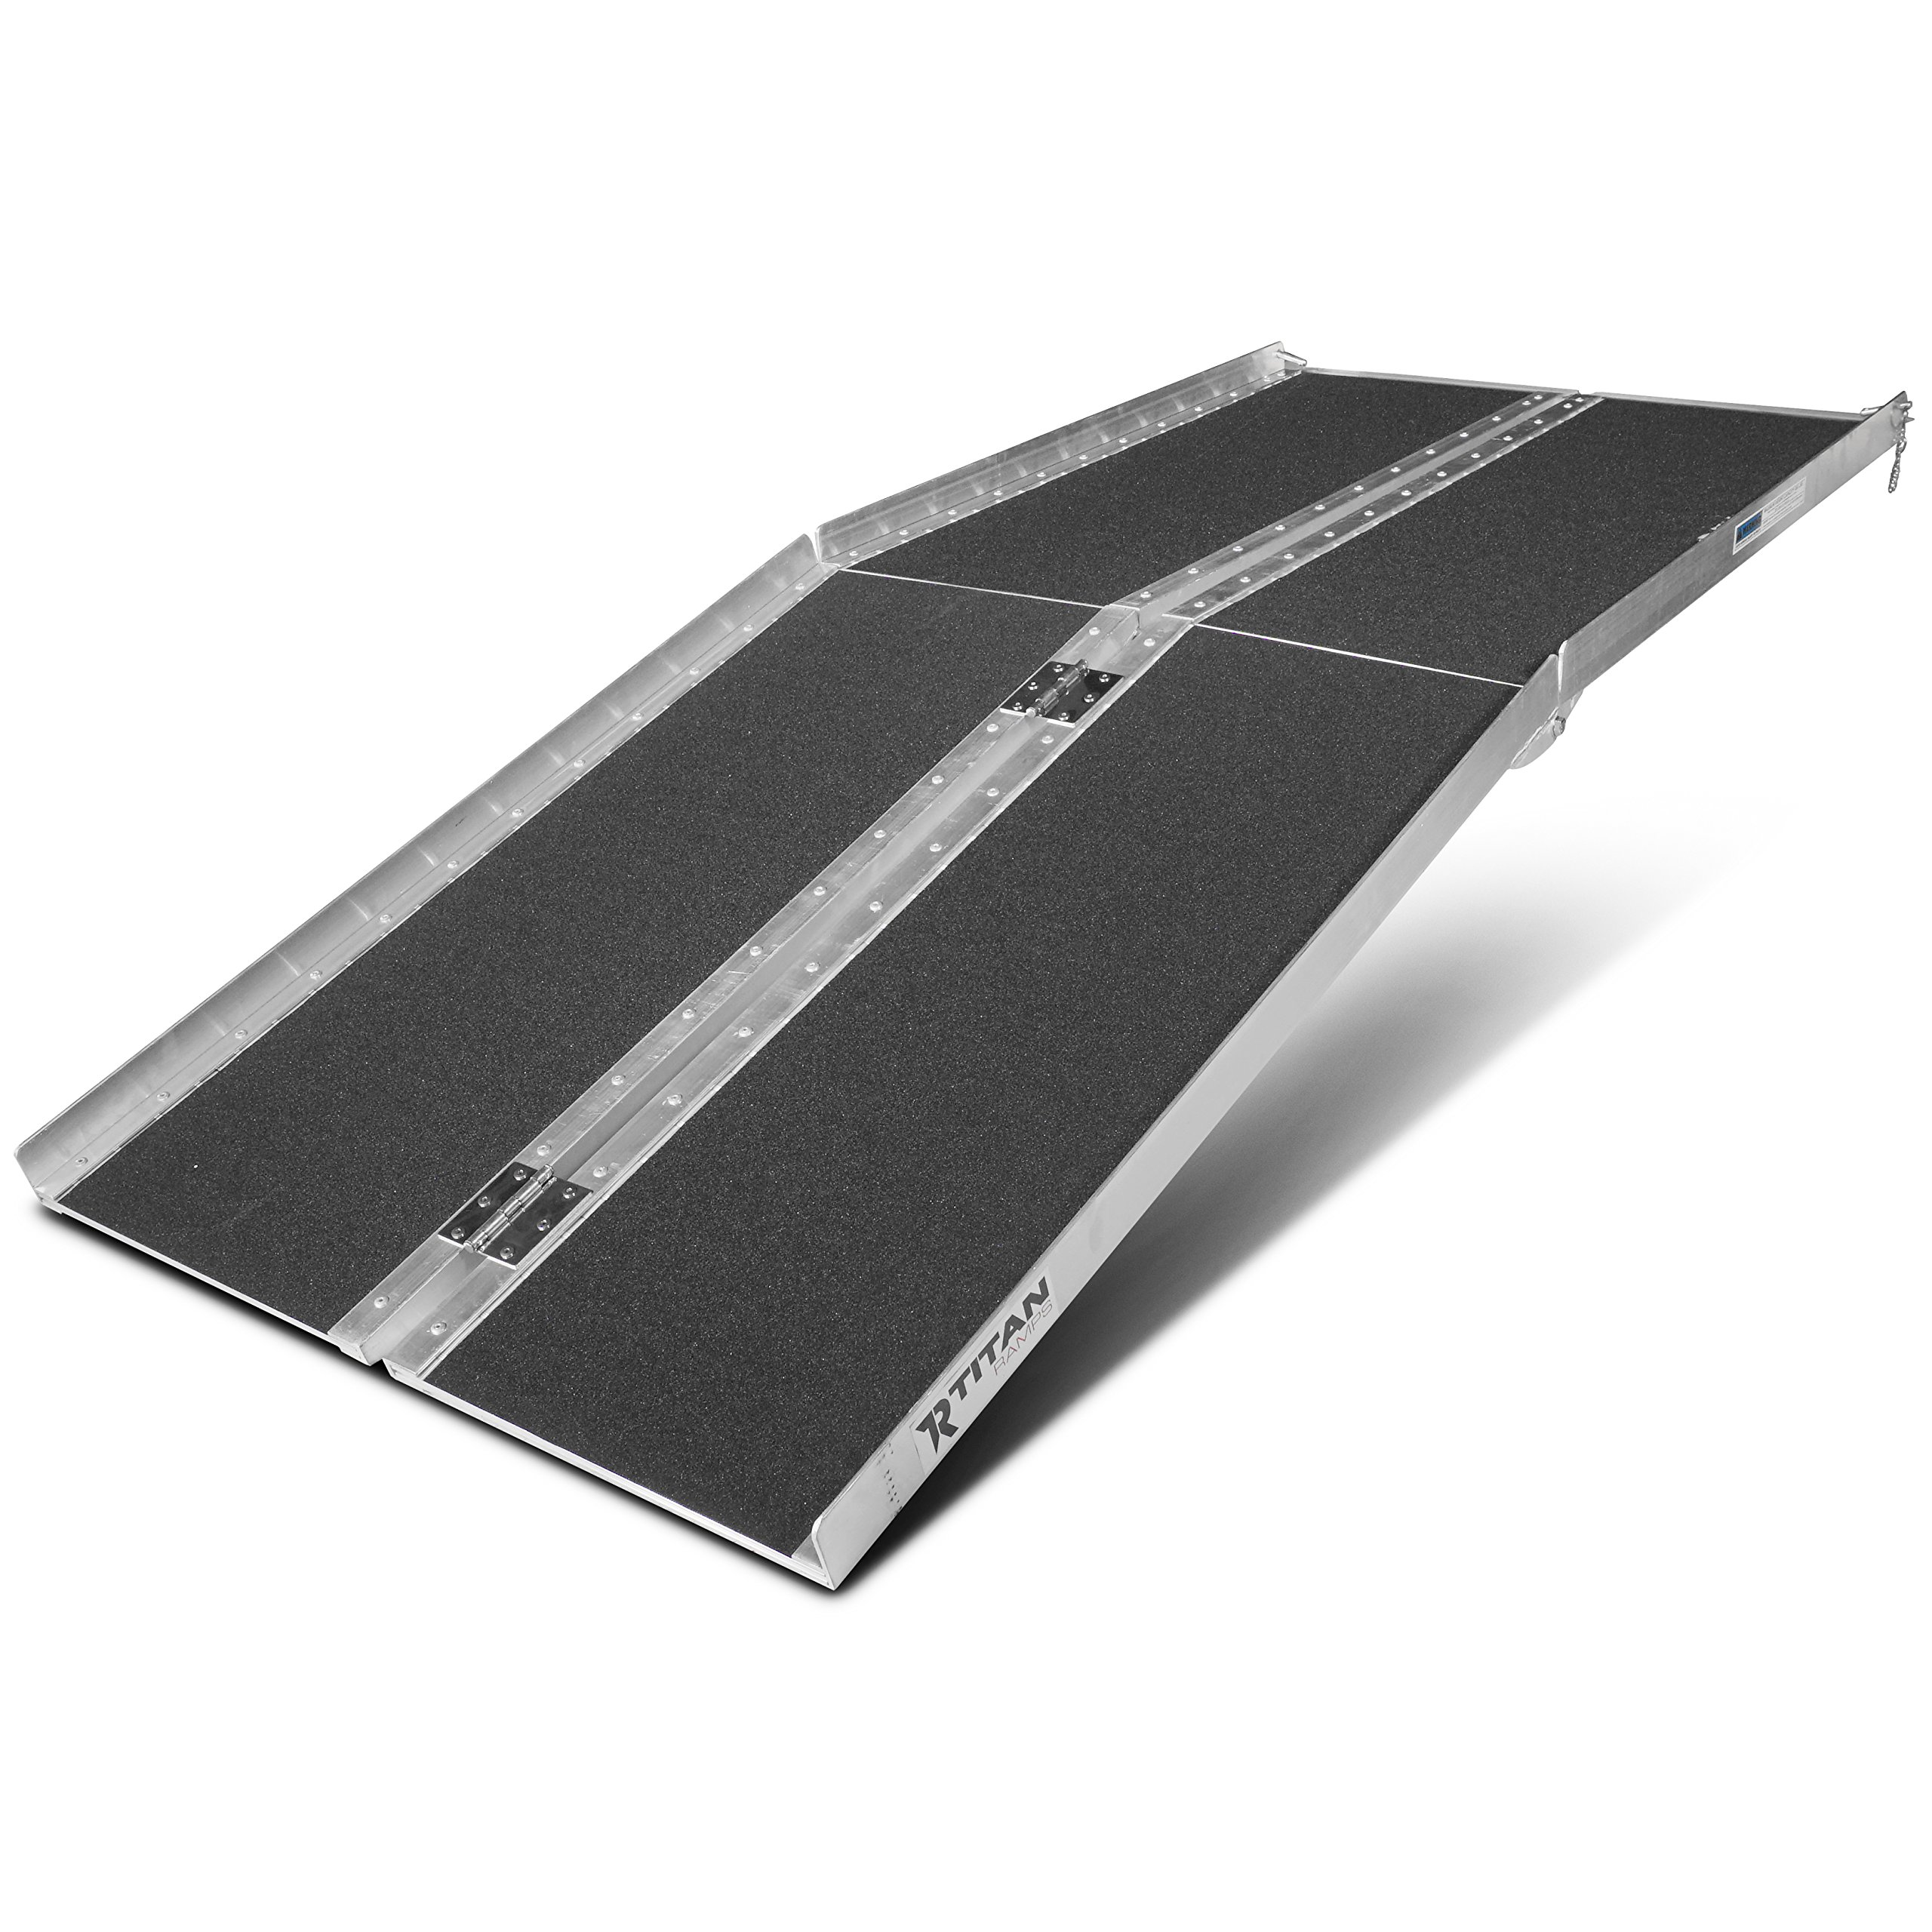 Titan Ramps 6' ft Aluminum Multifold Wheelchair Scooter Mobility Ramp portable 72'' (MF6) by Titan Ramps